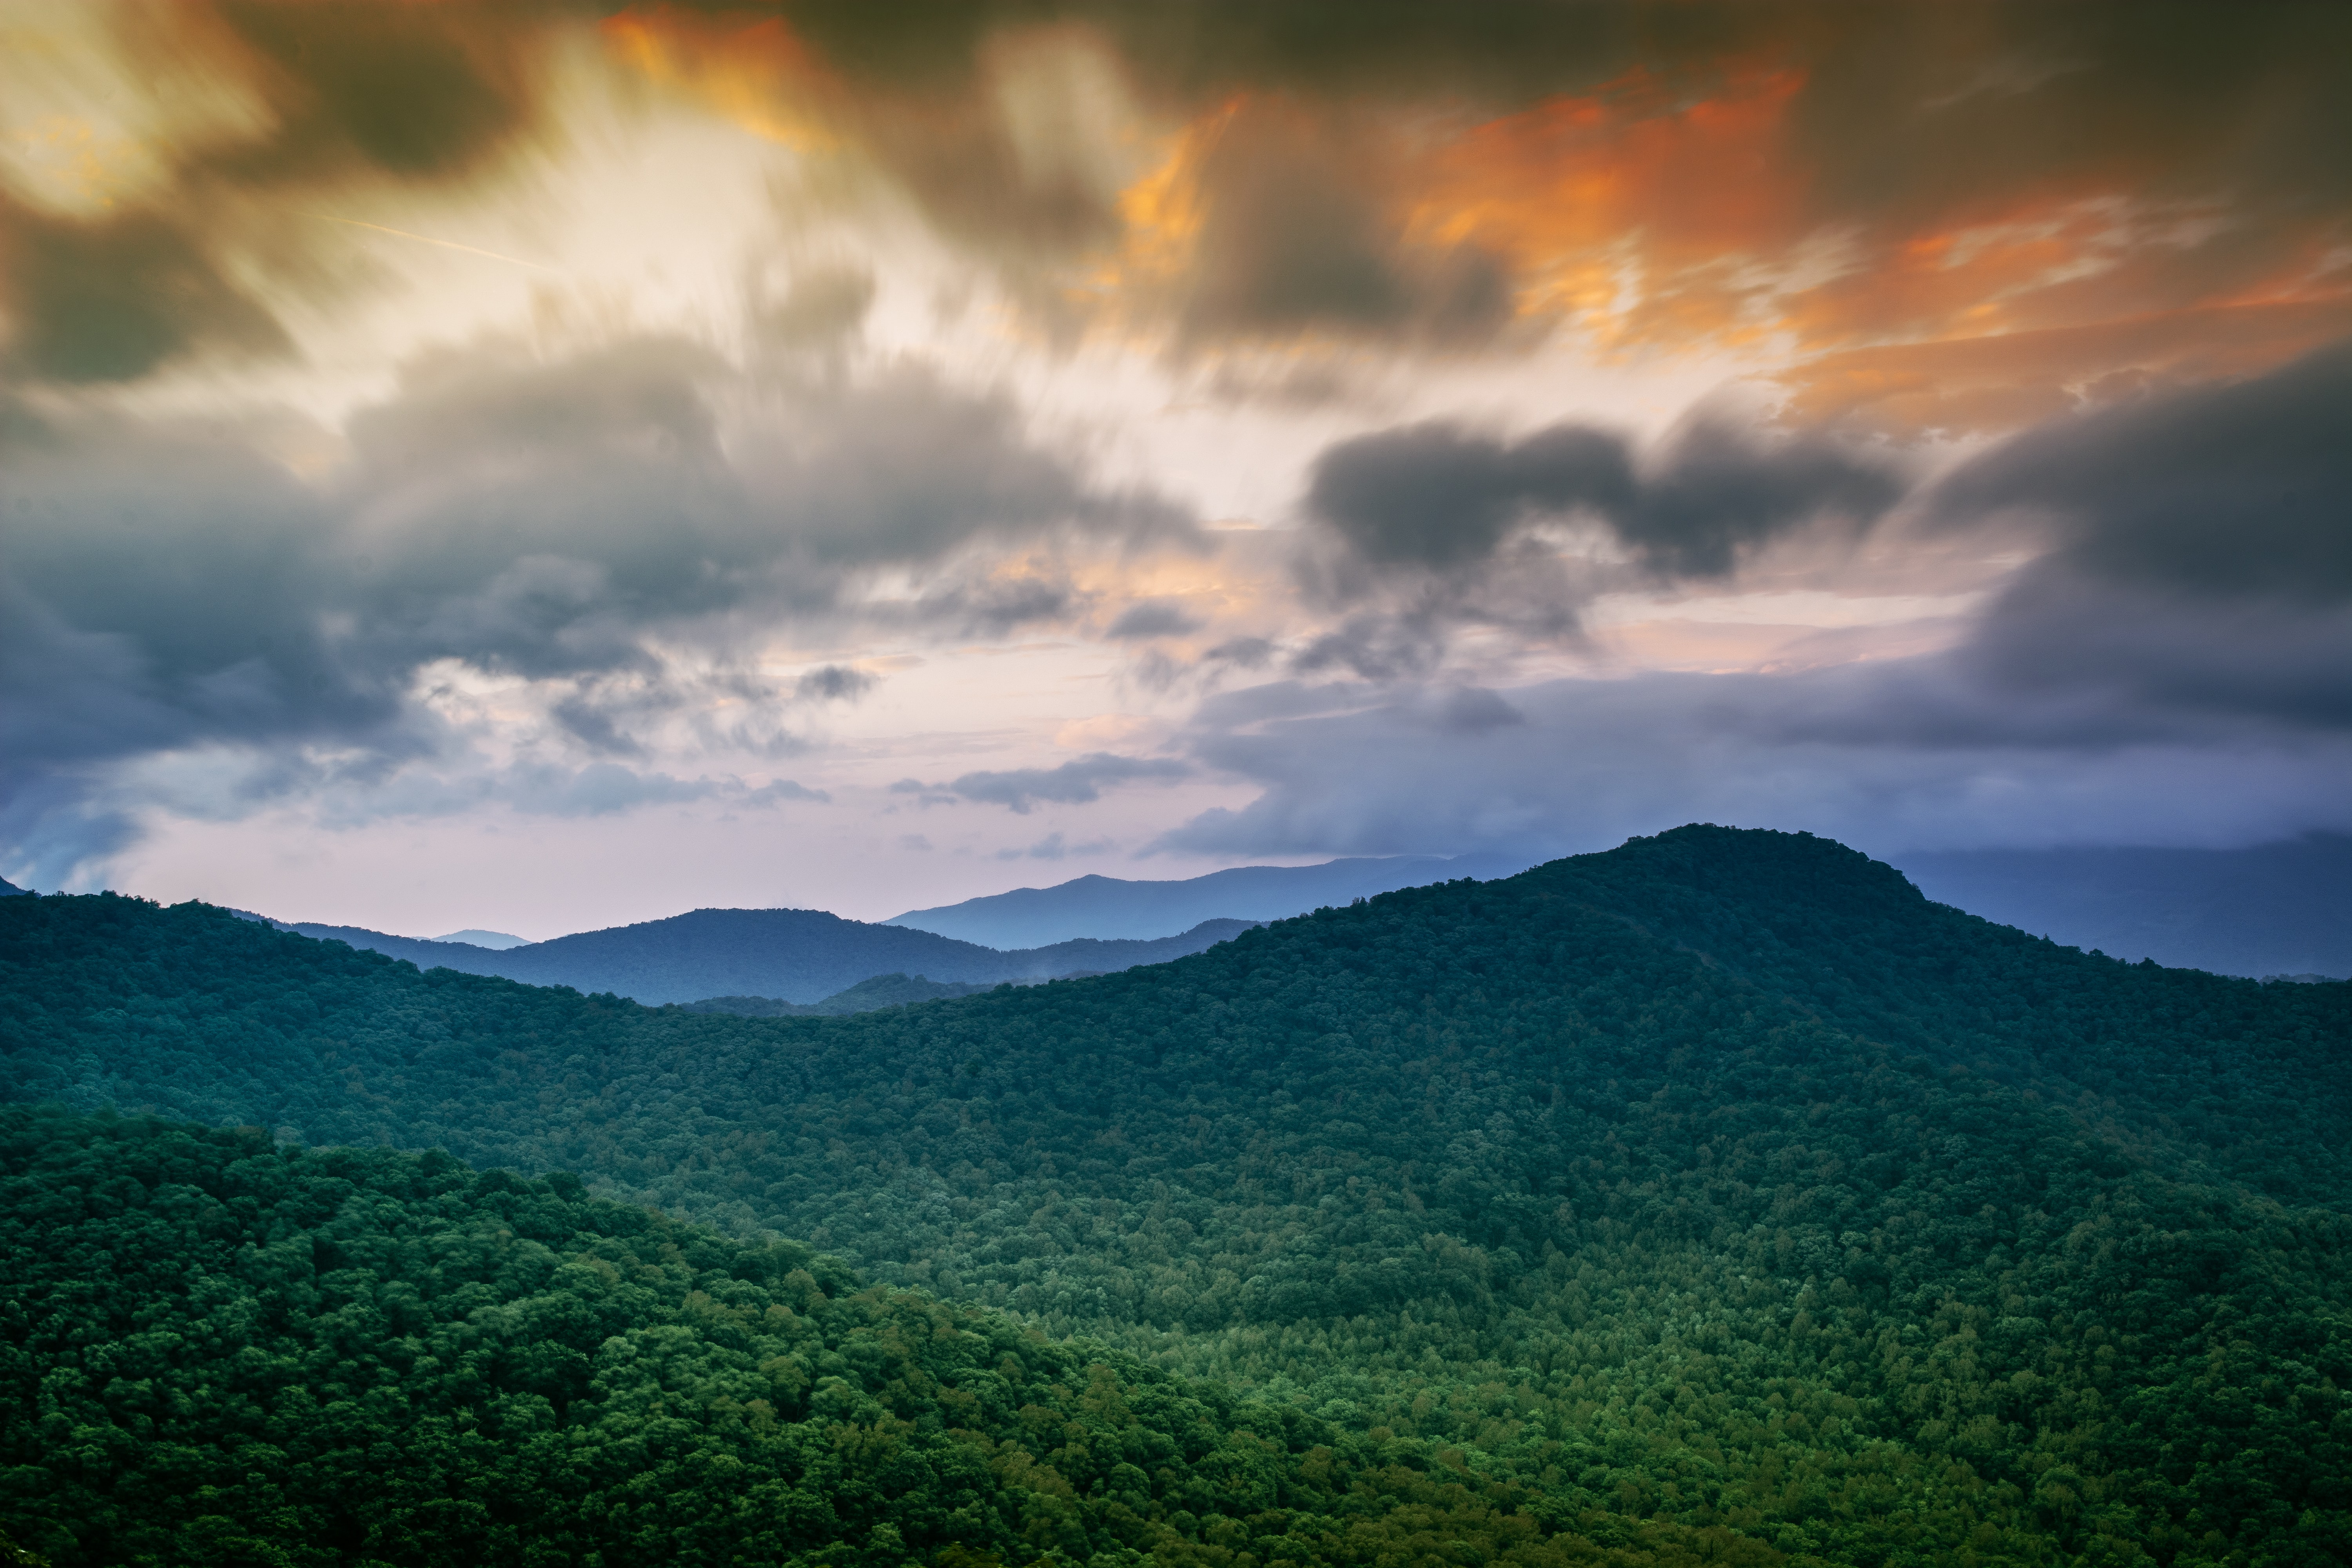 A forest blankets the hills of the jungle at sunset